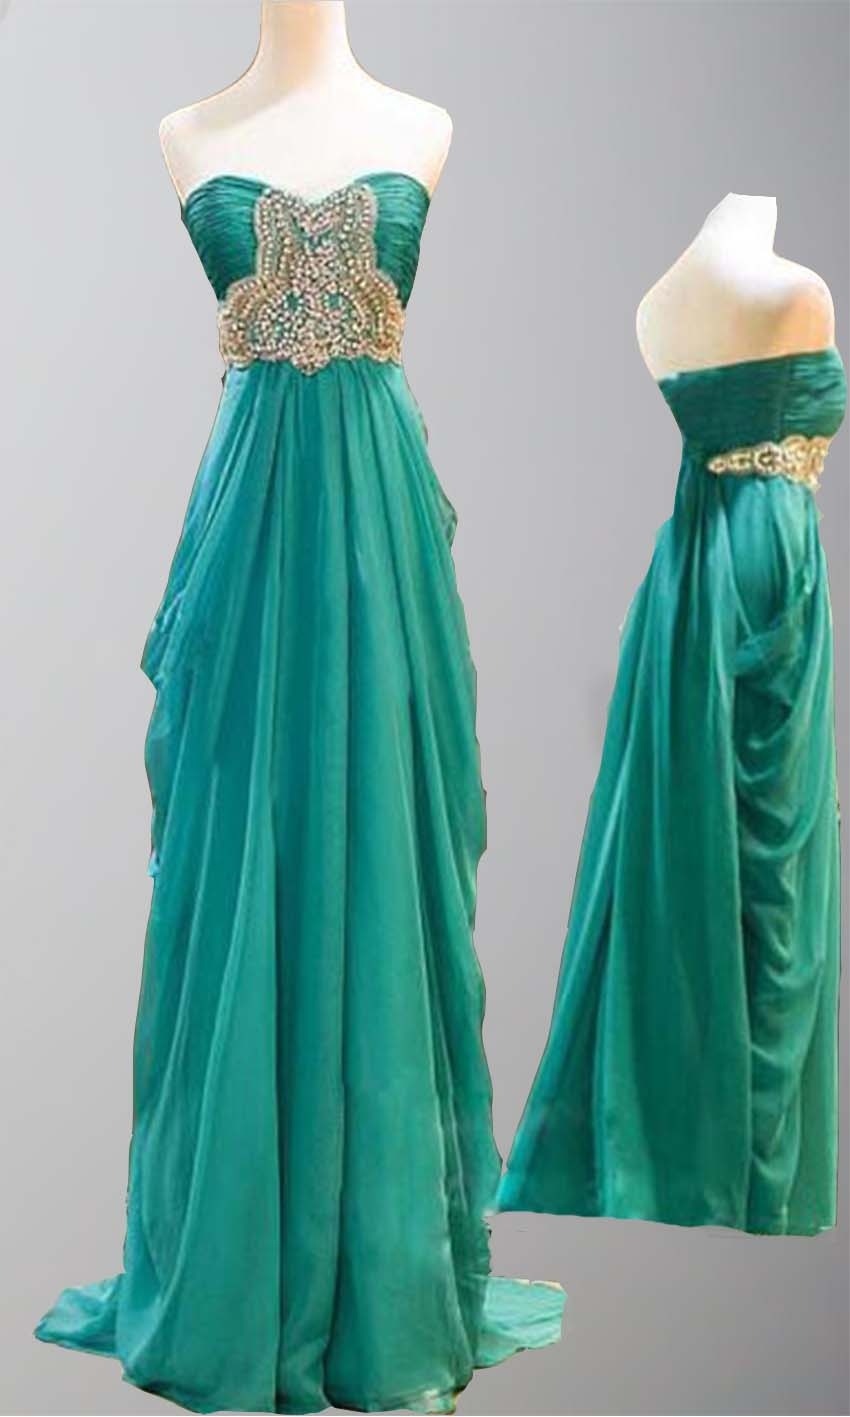 £99.00 : cheap prom dresses uk, bridesmaid dresses, 2014 prom & evening dresses, look for cheap elegant prom dresses 2014, cocktail gowns, or dresses for special occasions? kissprom.co.uk offers various bridesmaid dresses, evening dress, free shipping to uk etc.